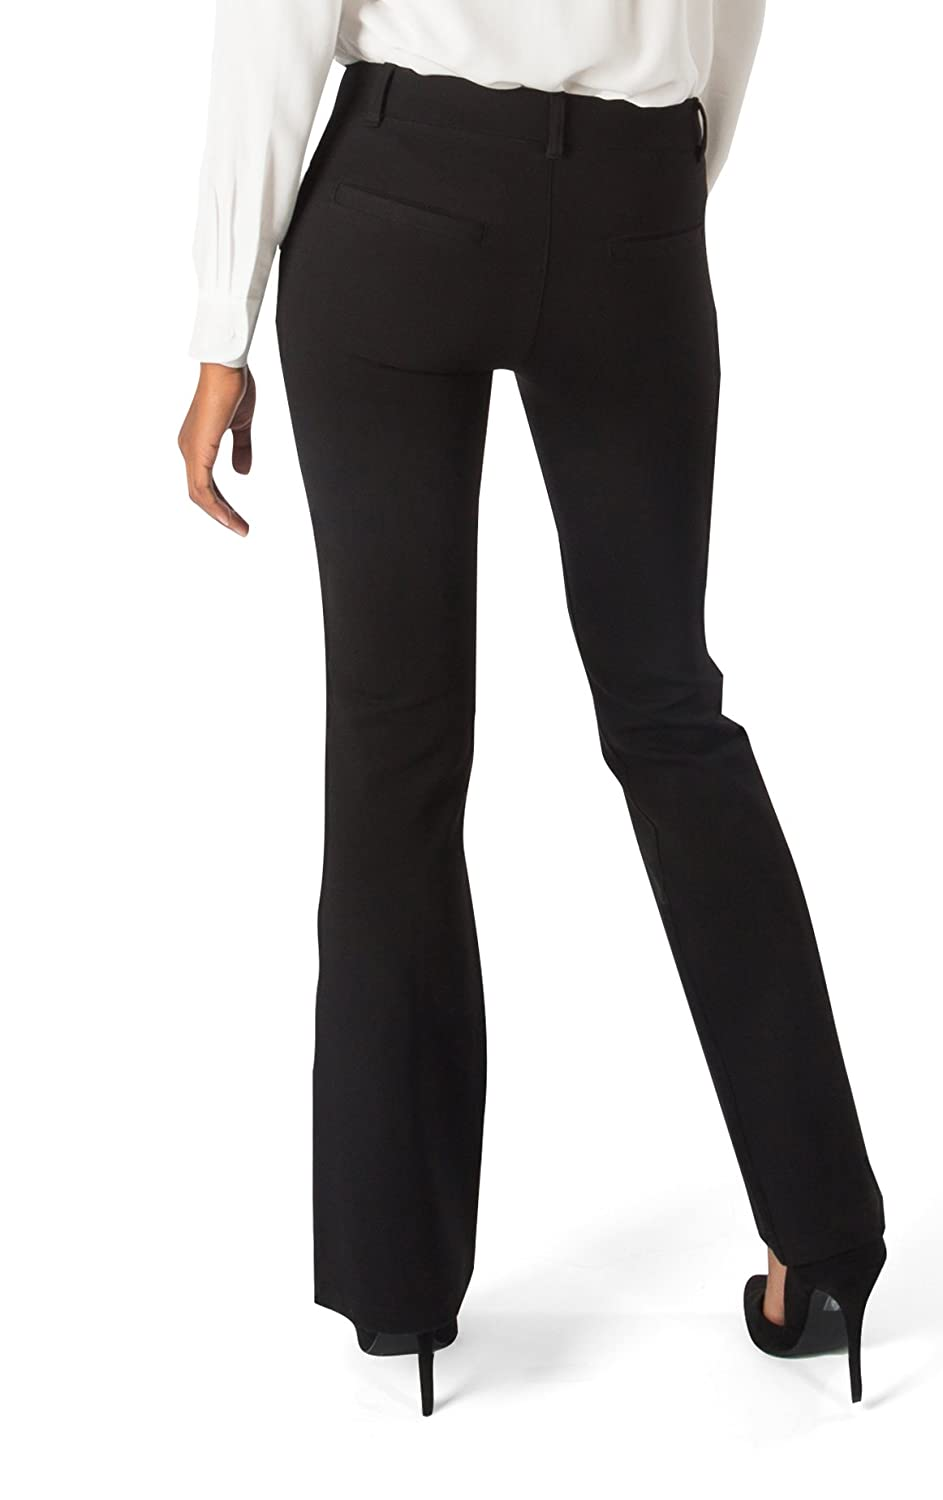 5c0f1799700bd Amazon.com: Betabrand Women's Dress Pant Yoga Pants (Boot-Cut): Clothing